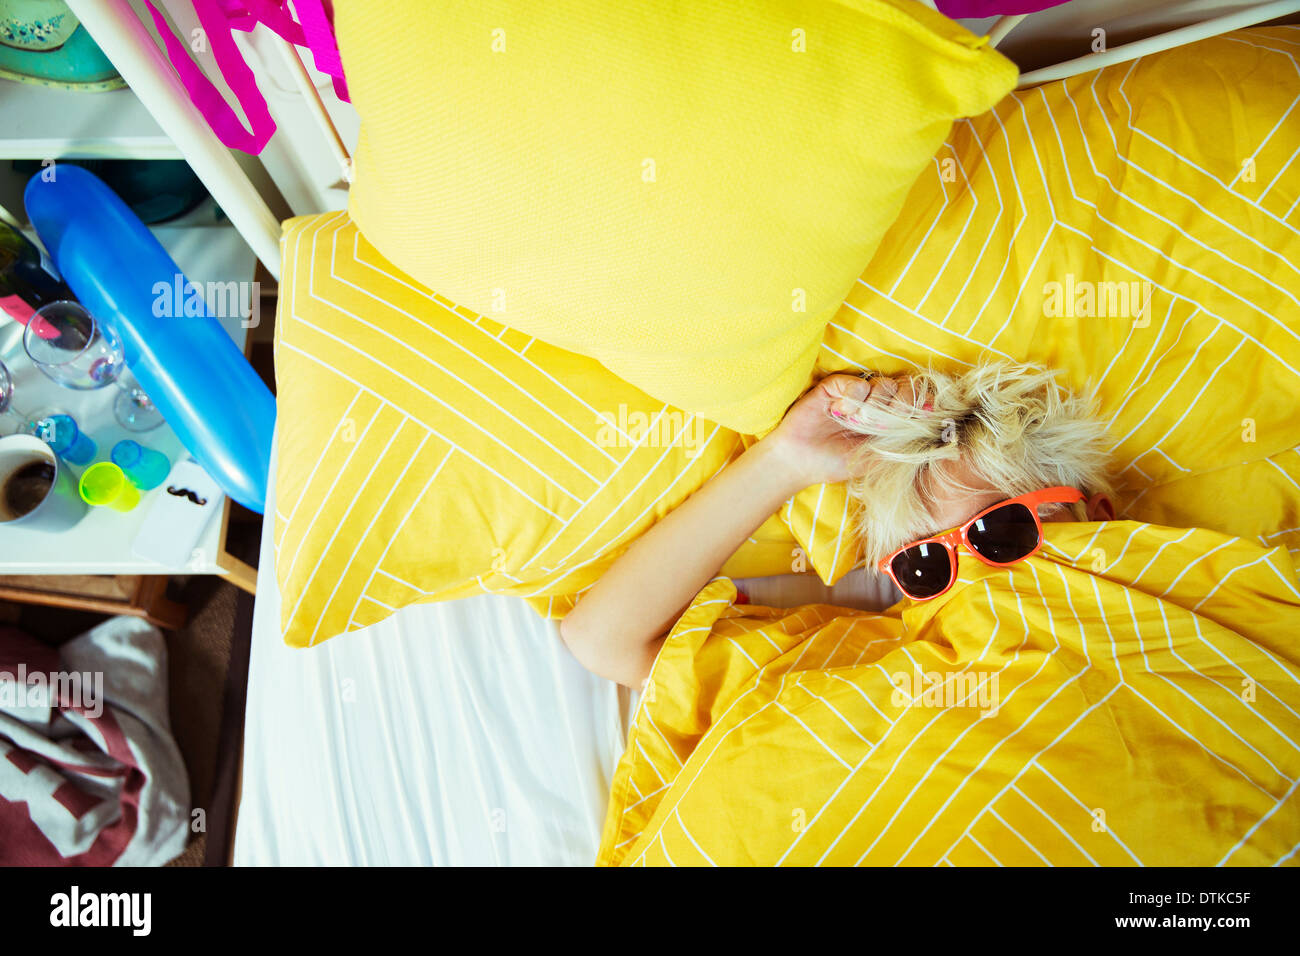 Woman wearing sunglasses in bed after party - Stock Image